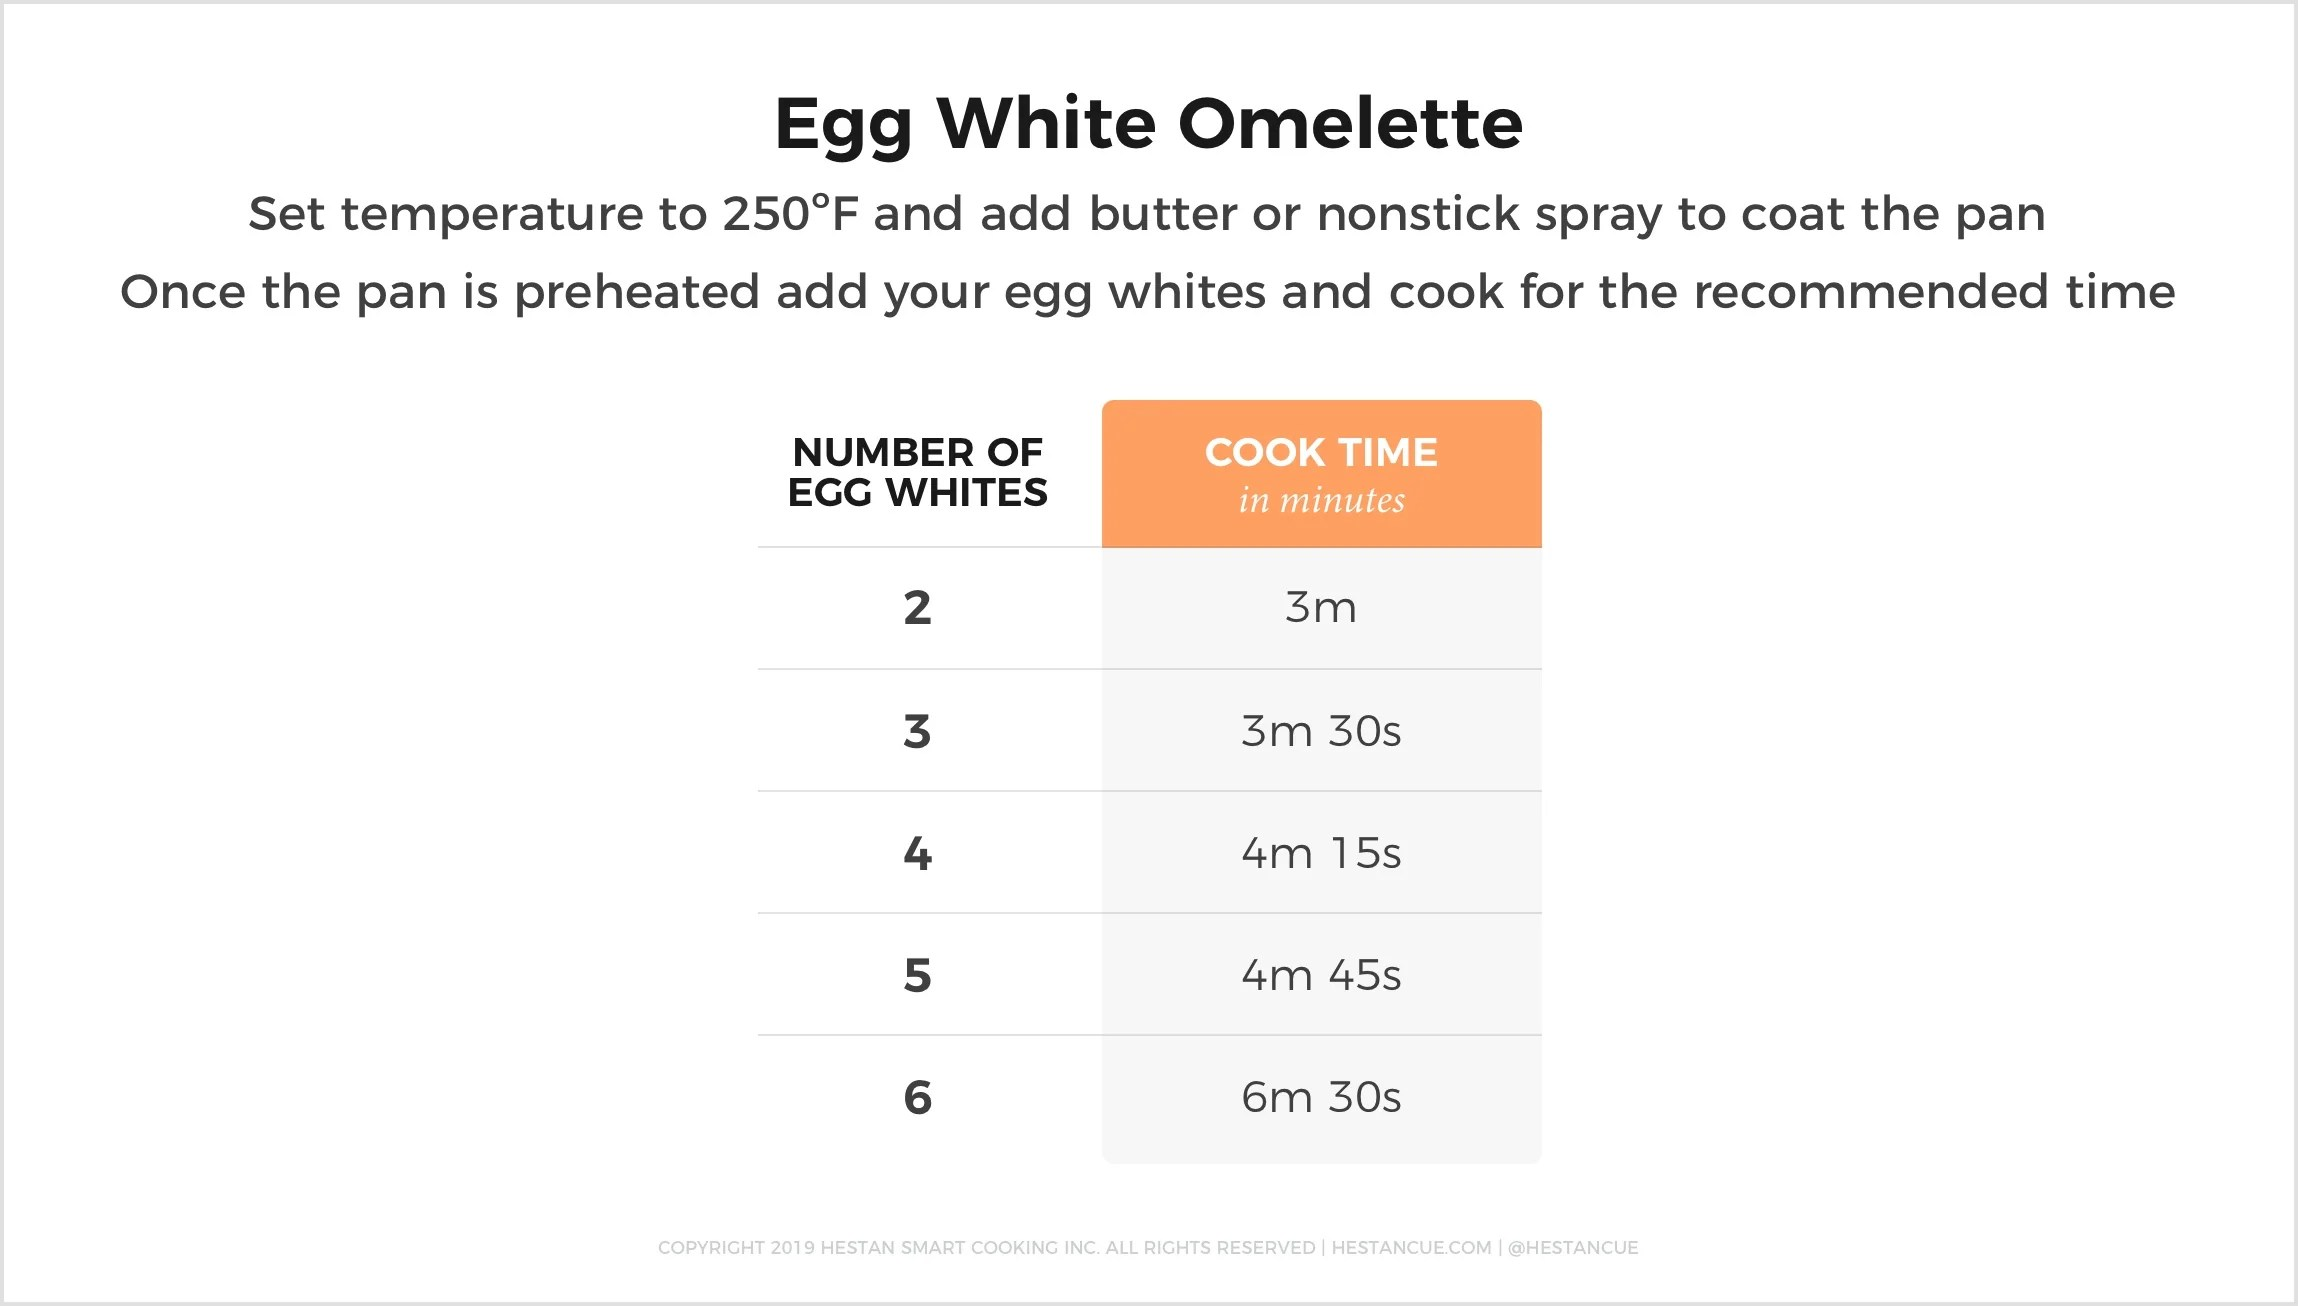 The Complete Guide to Cooking Eggs in a Pan - Hestan Cue